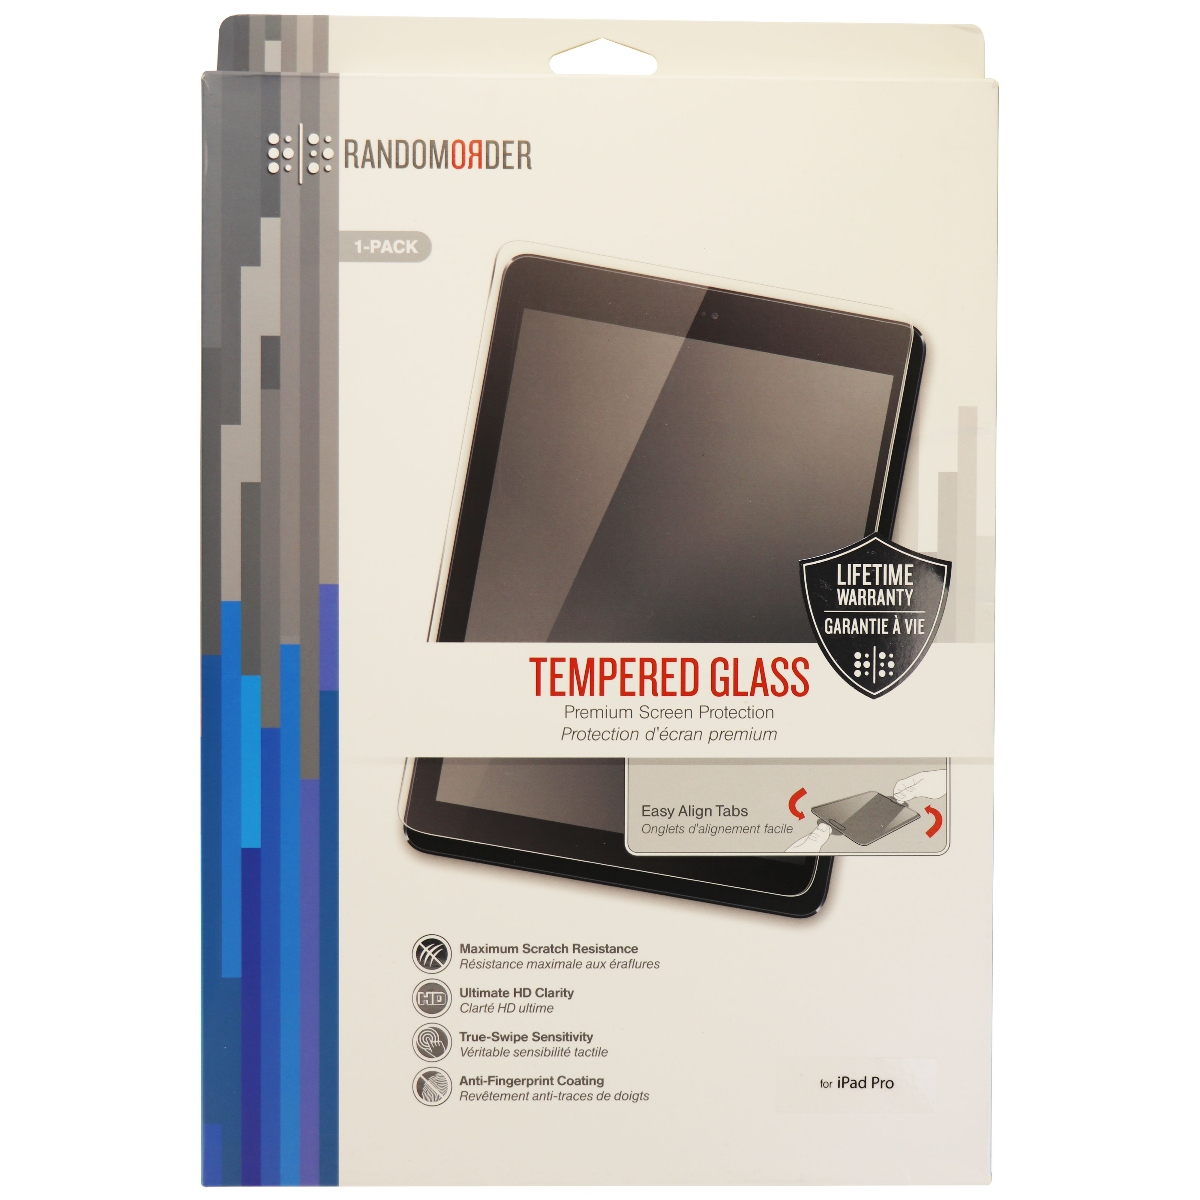 Random Order Tempered Glass Screen Protector for Apple iPad Pro 12.9 - Clear